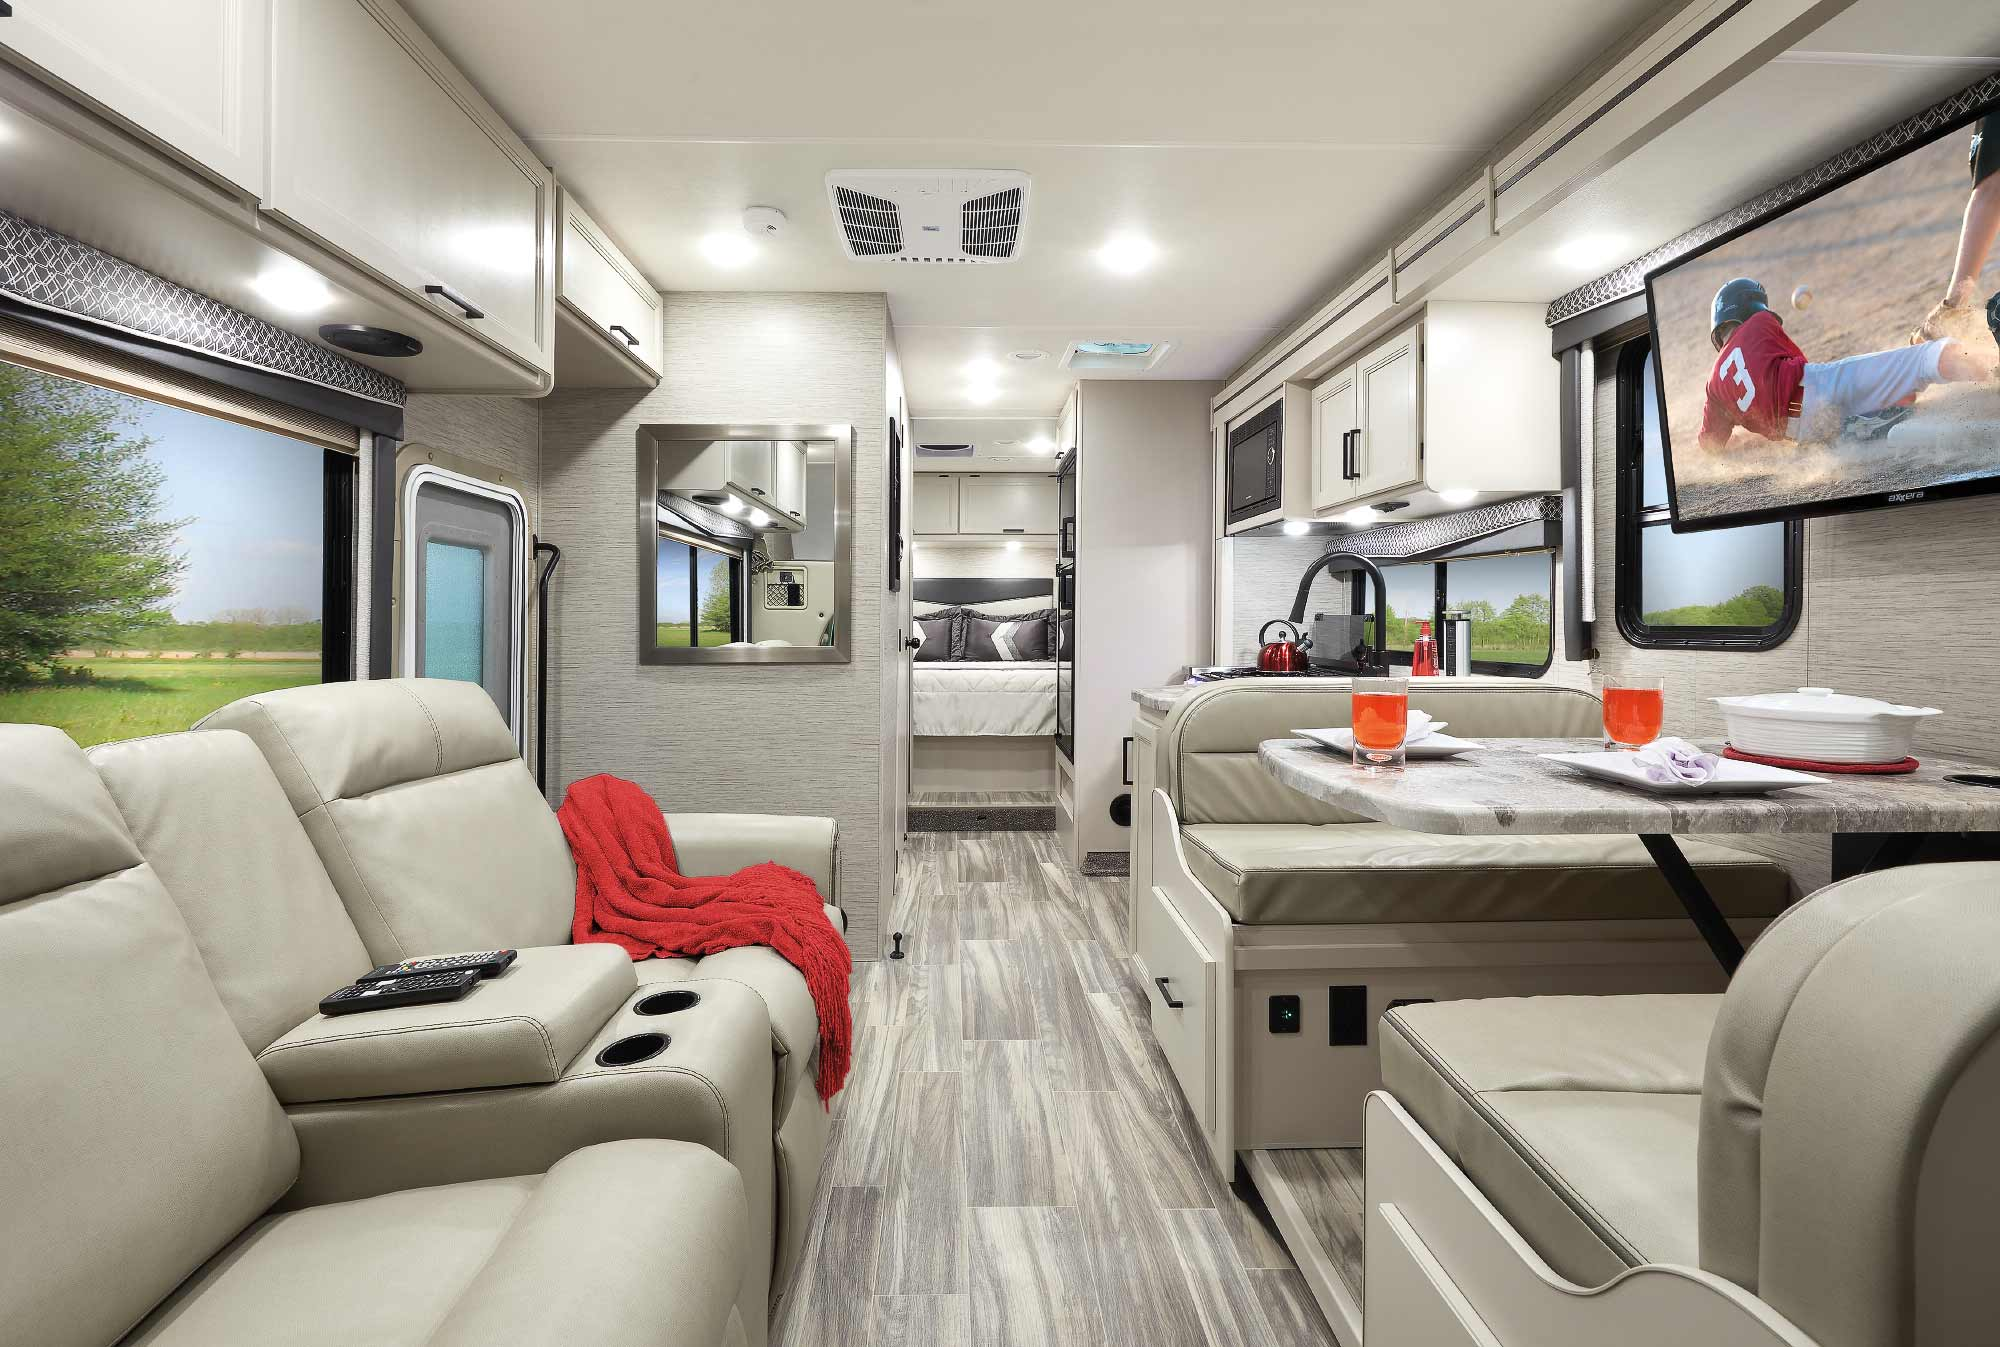 Four Winds Class C Motorhome Interior